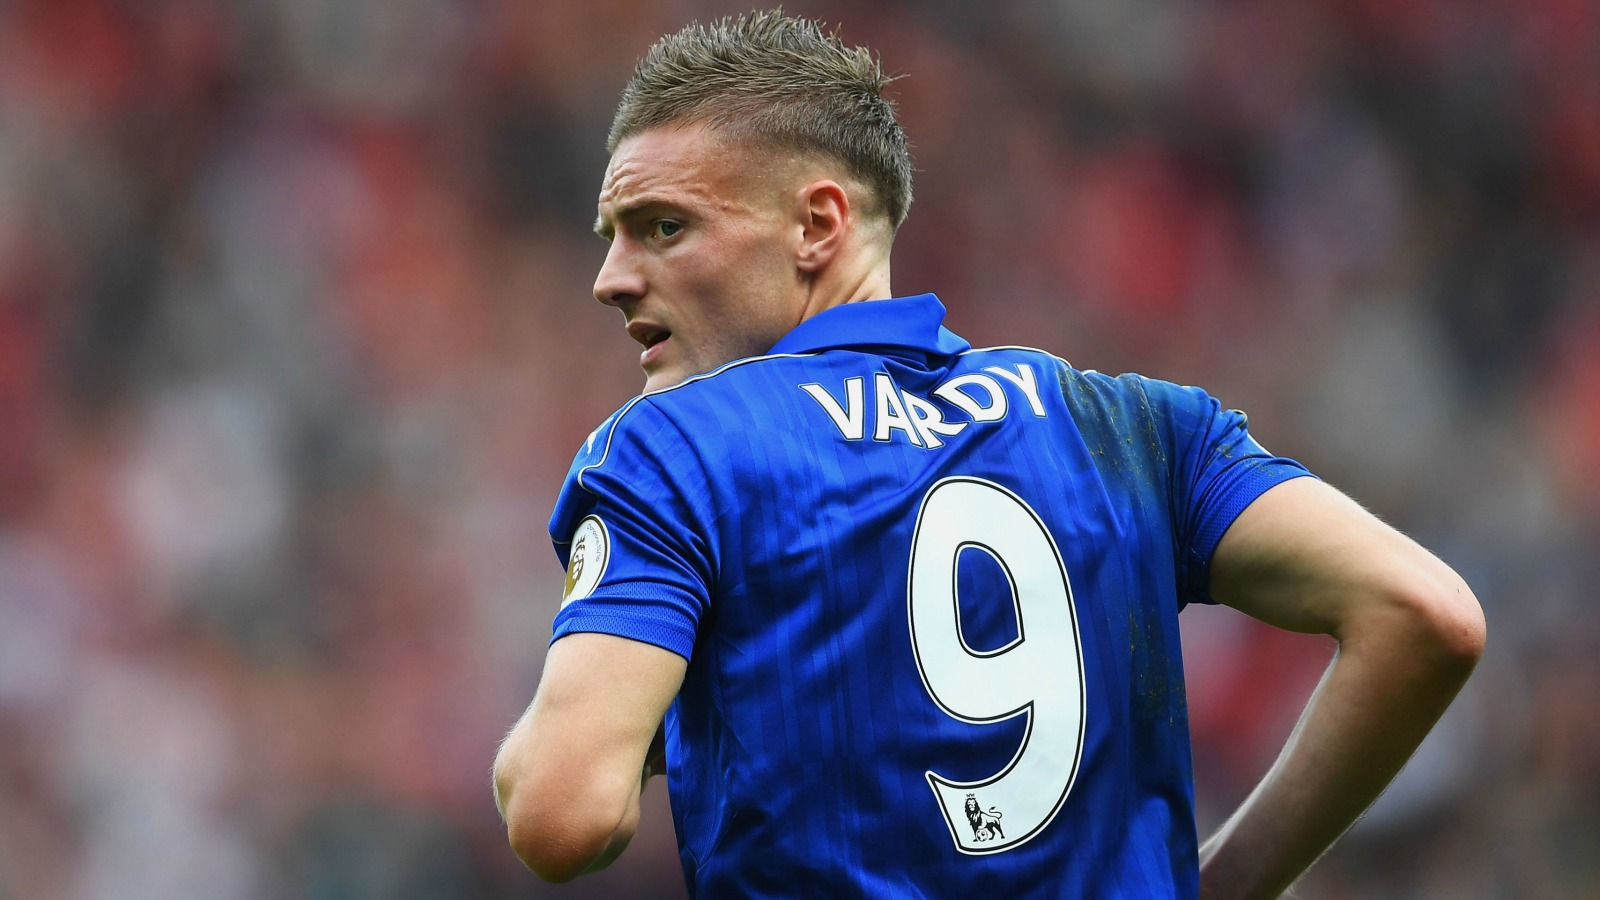 Jamie Vardy reveals how taste for Skittles vodka once delayed injury recovery